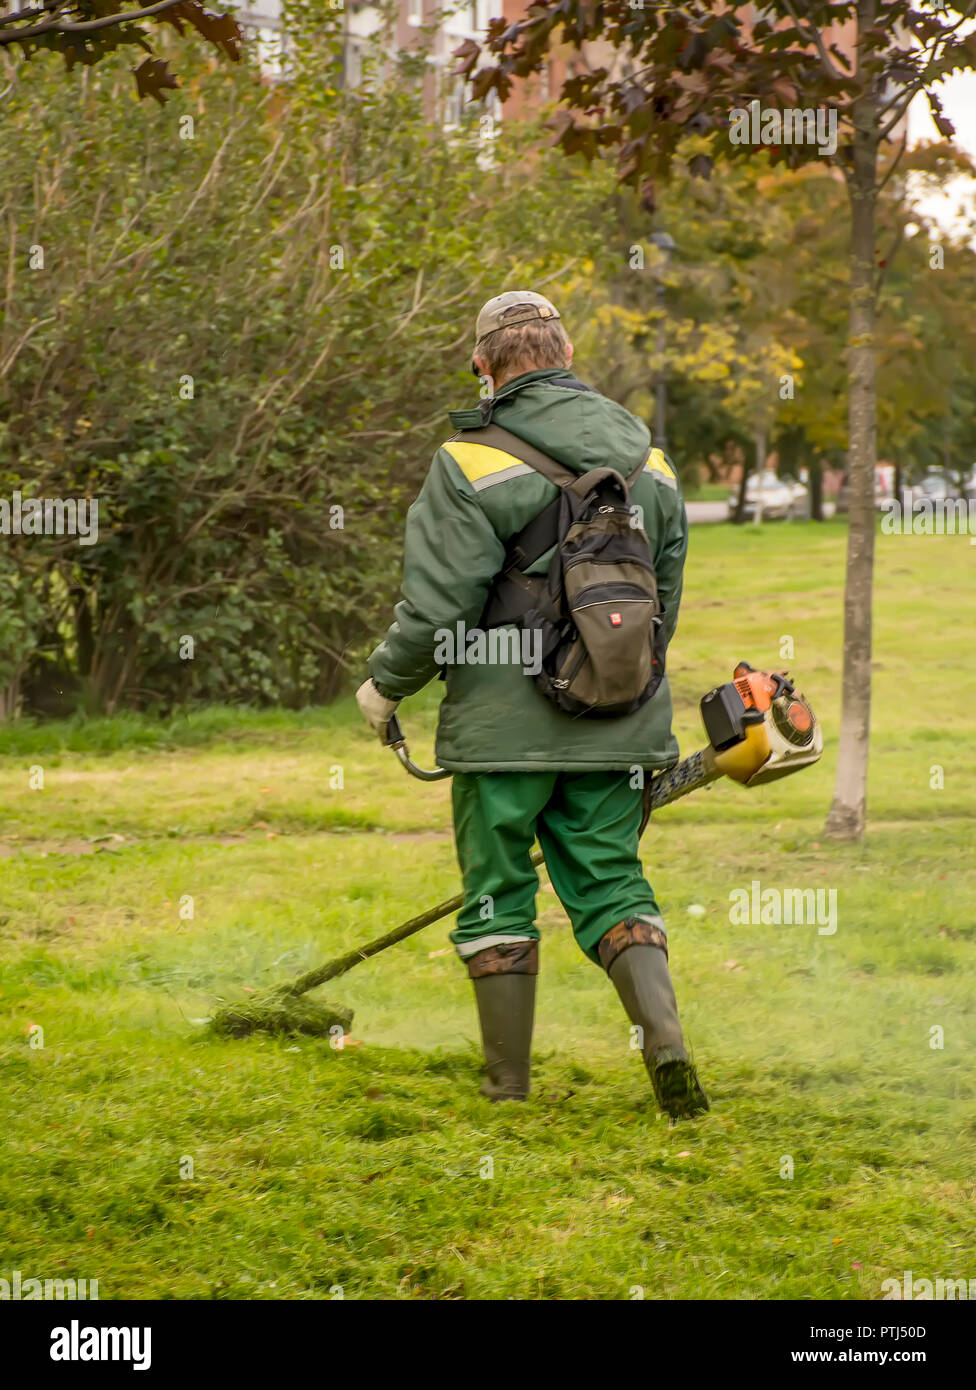 Workers mow the grass on the lawn in the city square. - Stock Image